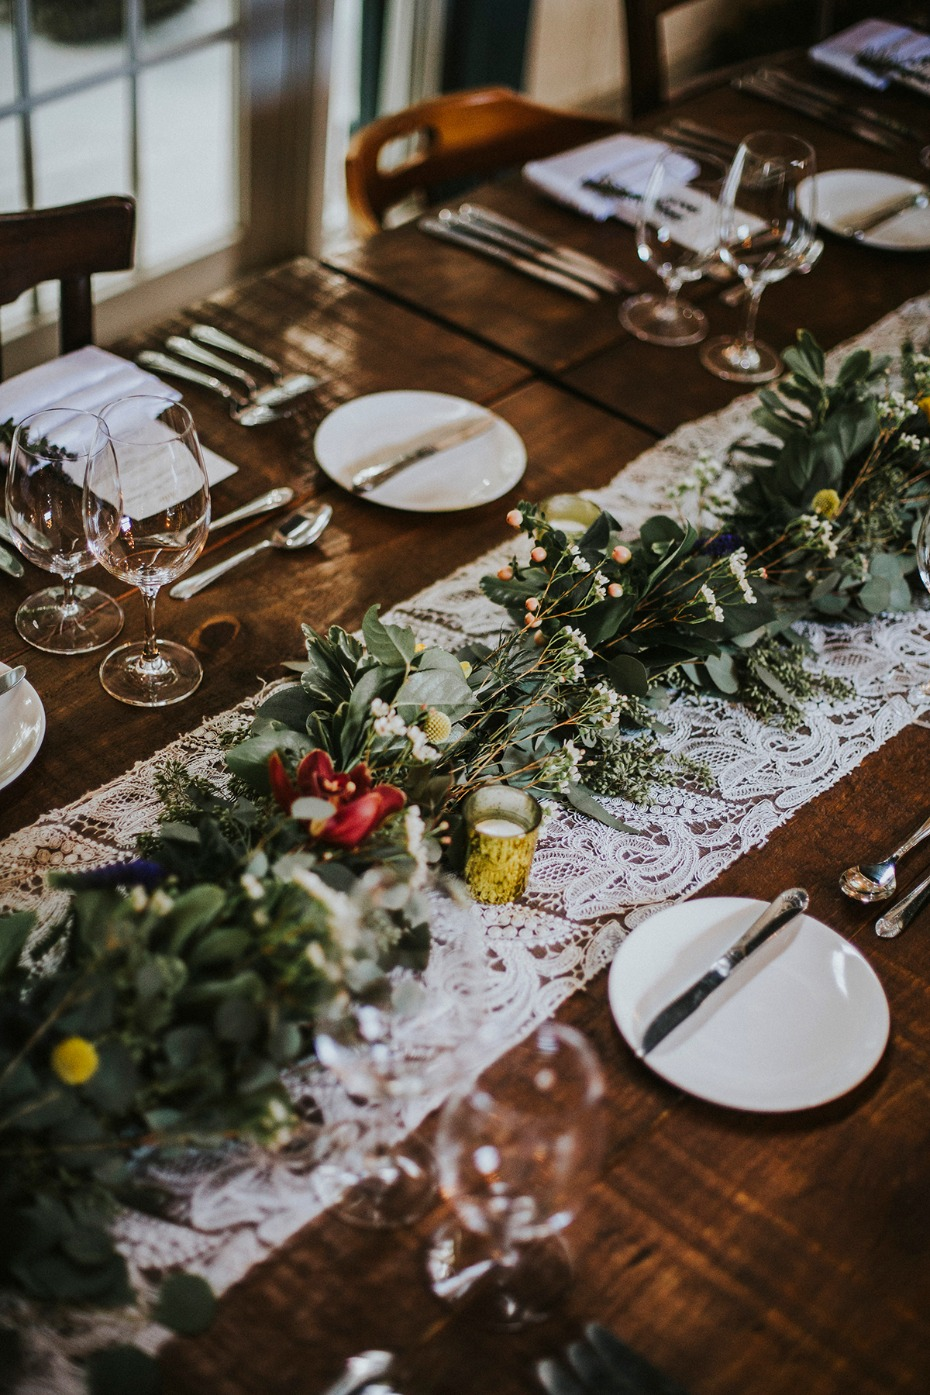 lacy table runner and wildflower garland